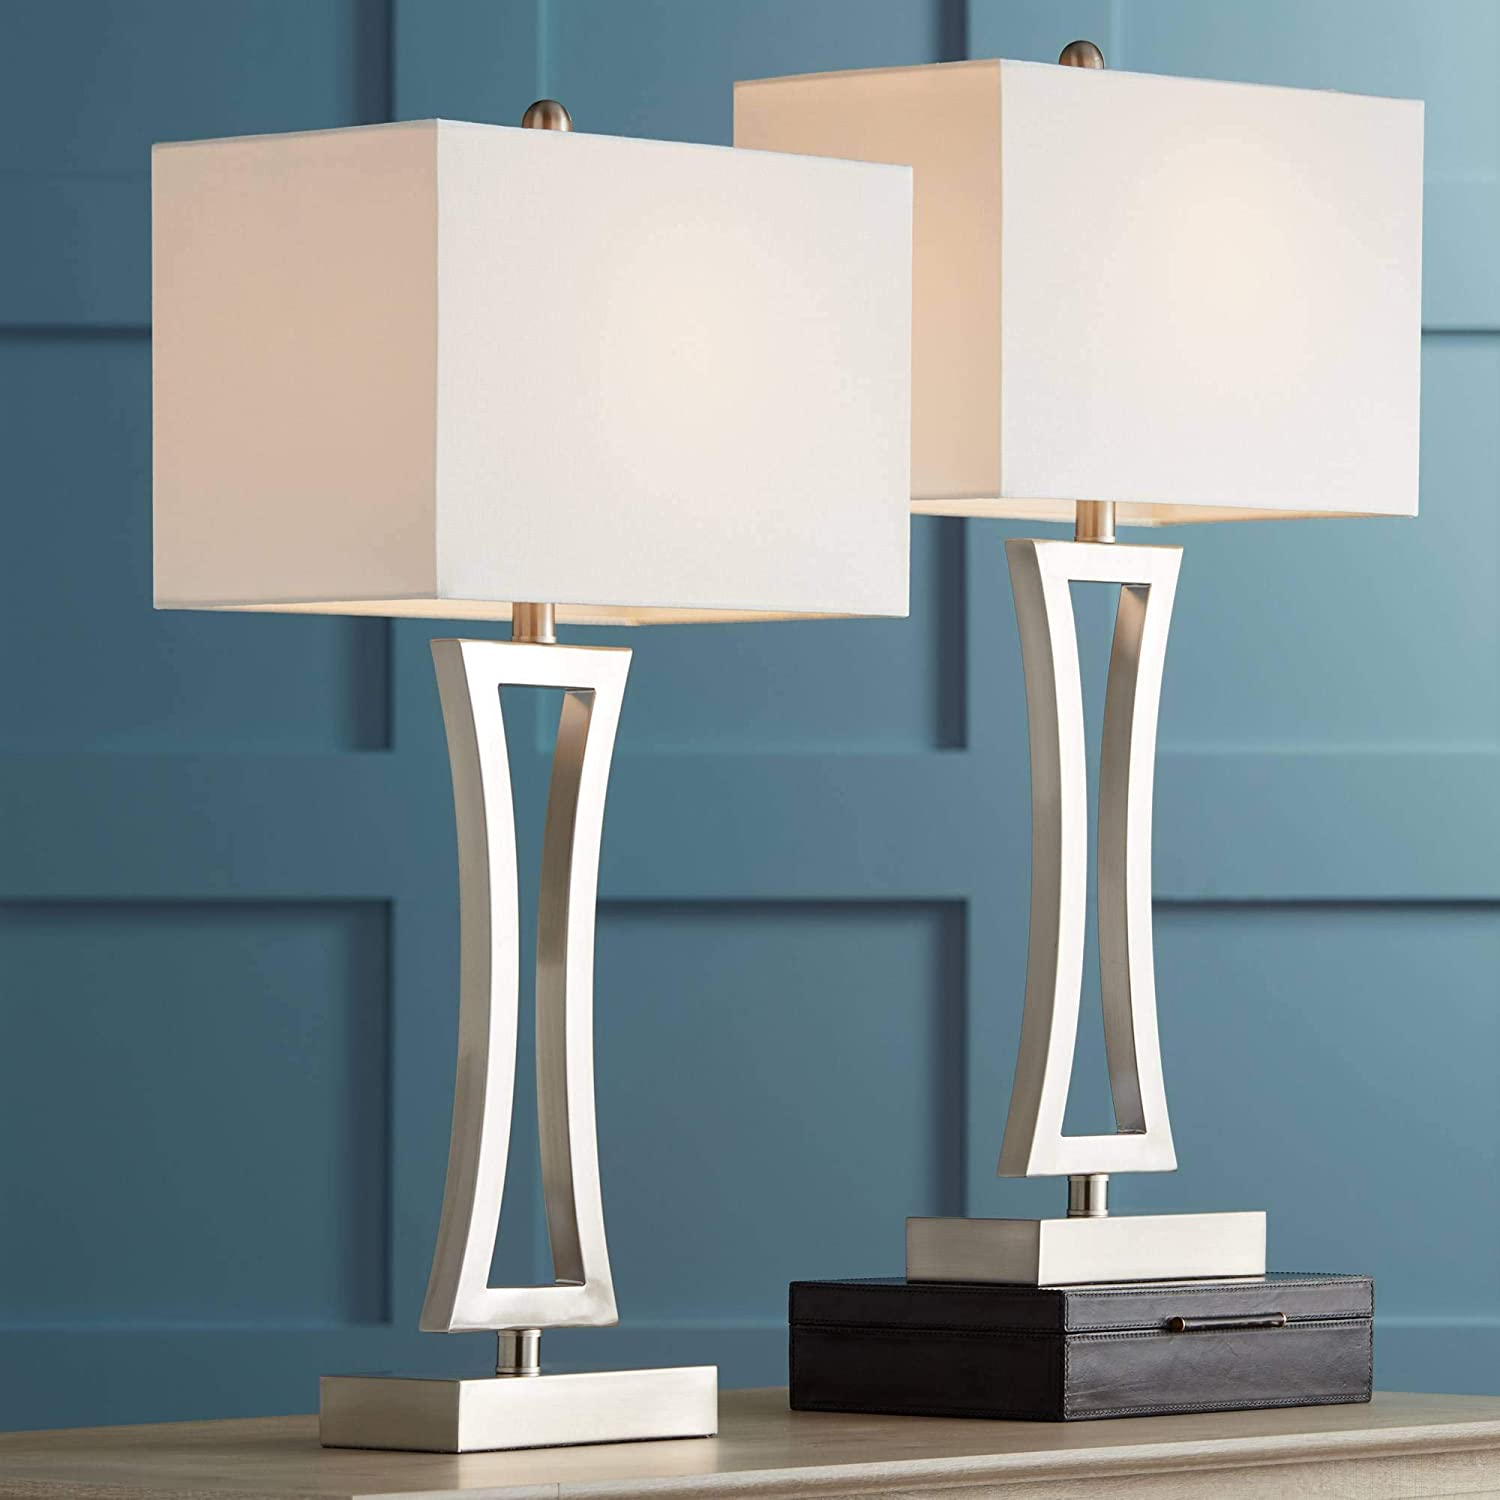 Roxie Modern Table Lamps Set of 2 Brushed Steel Off White Rectangular Shade for Living Room Family Bedroom Bedside Office